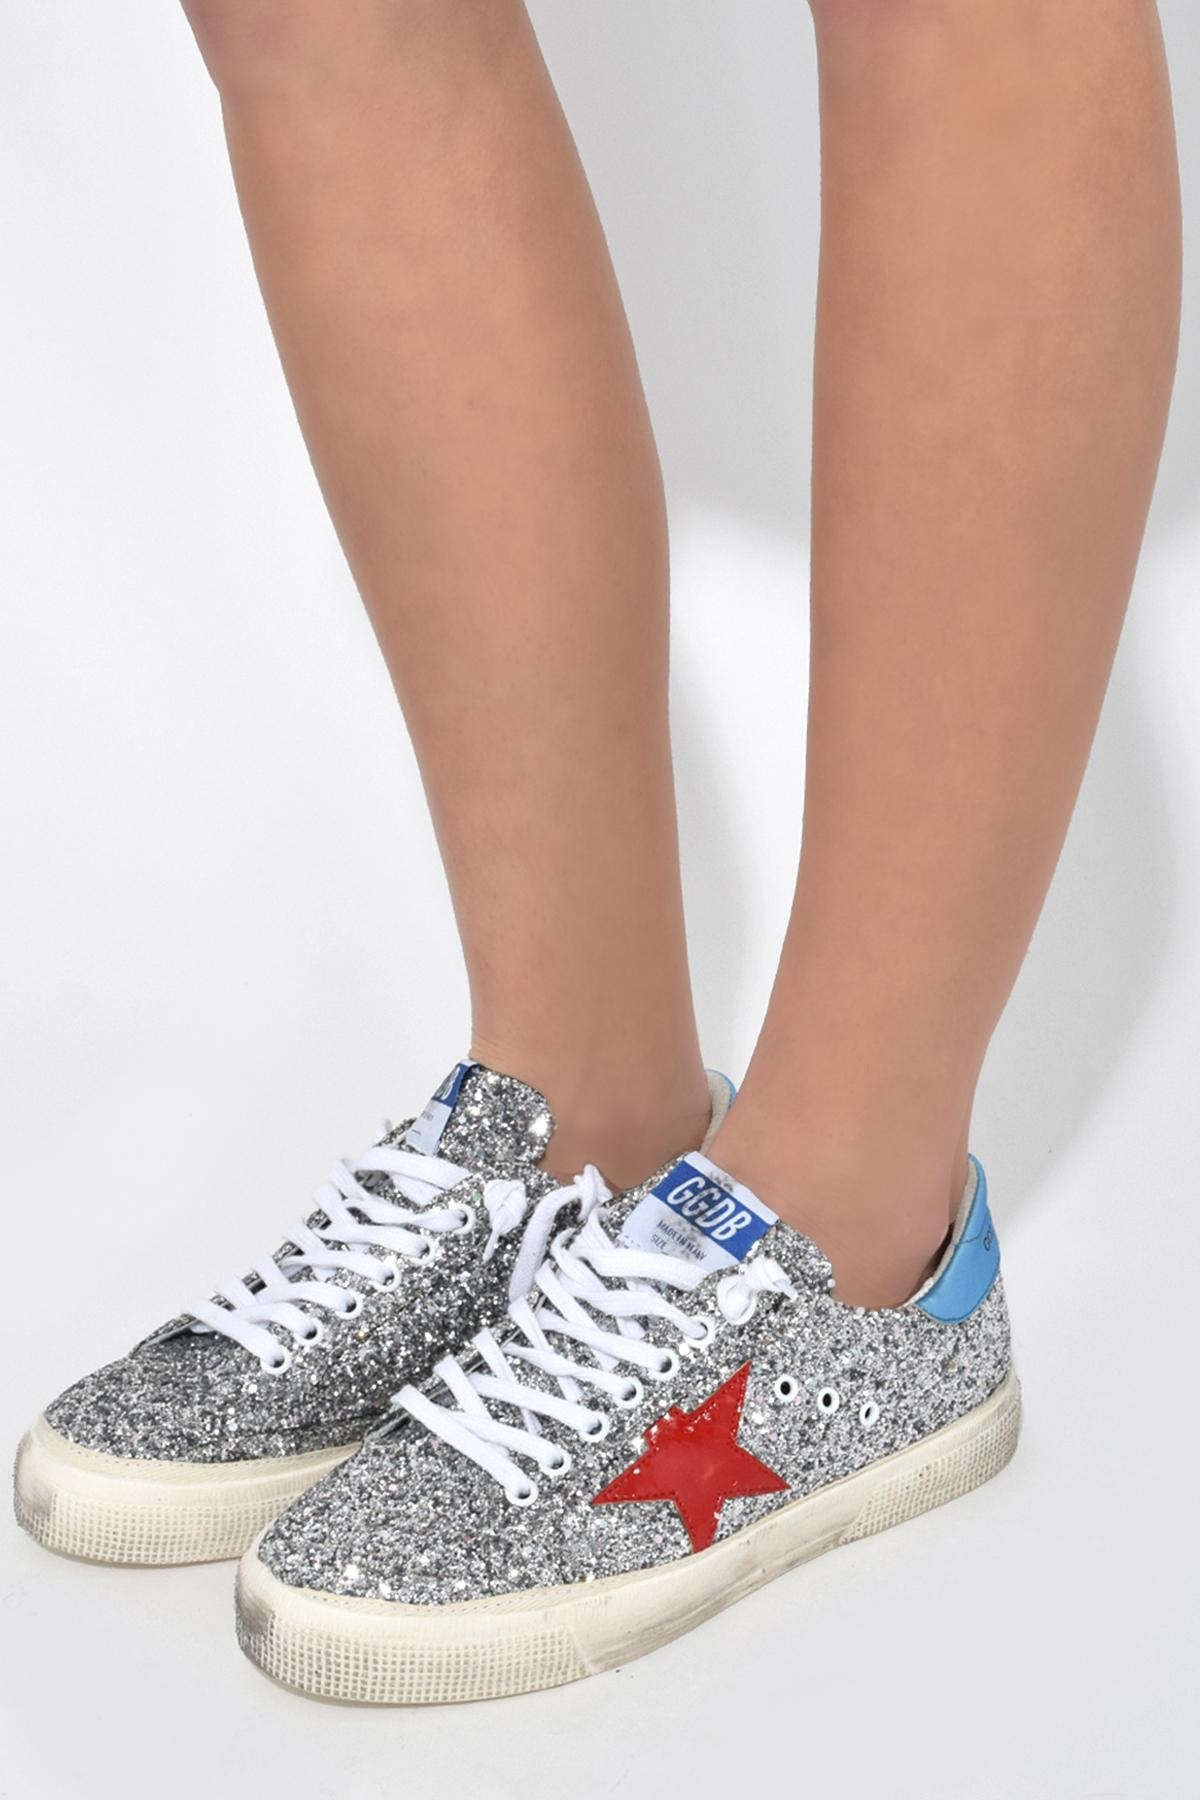 Golden Goose Deluxe Brand Leather May Sneakers In Glitter/red Star